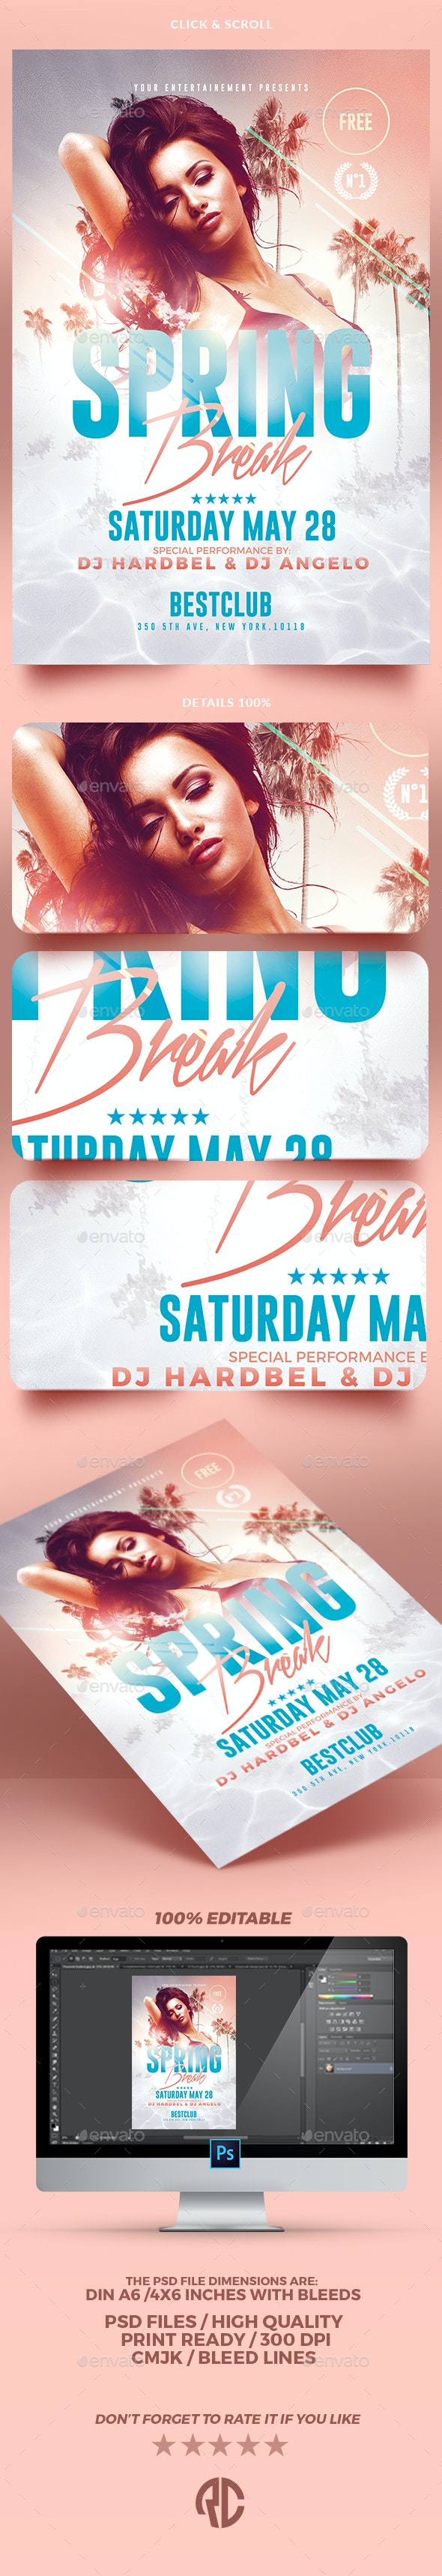 Spring Break | Psd Flyer Template - Clubs & Parties Events